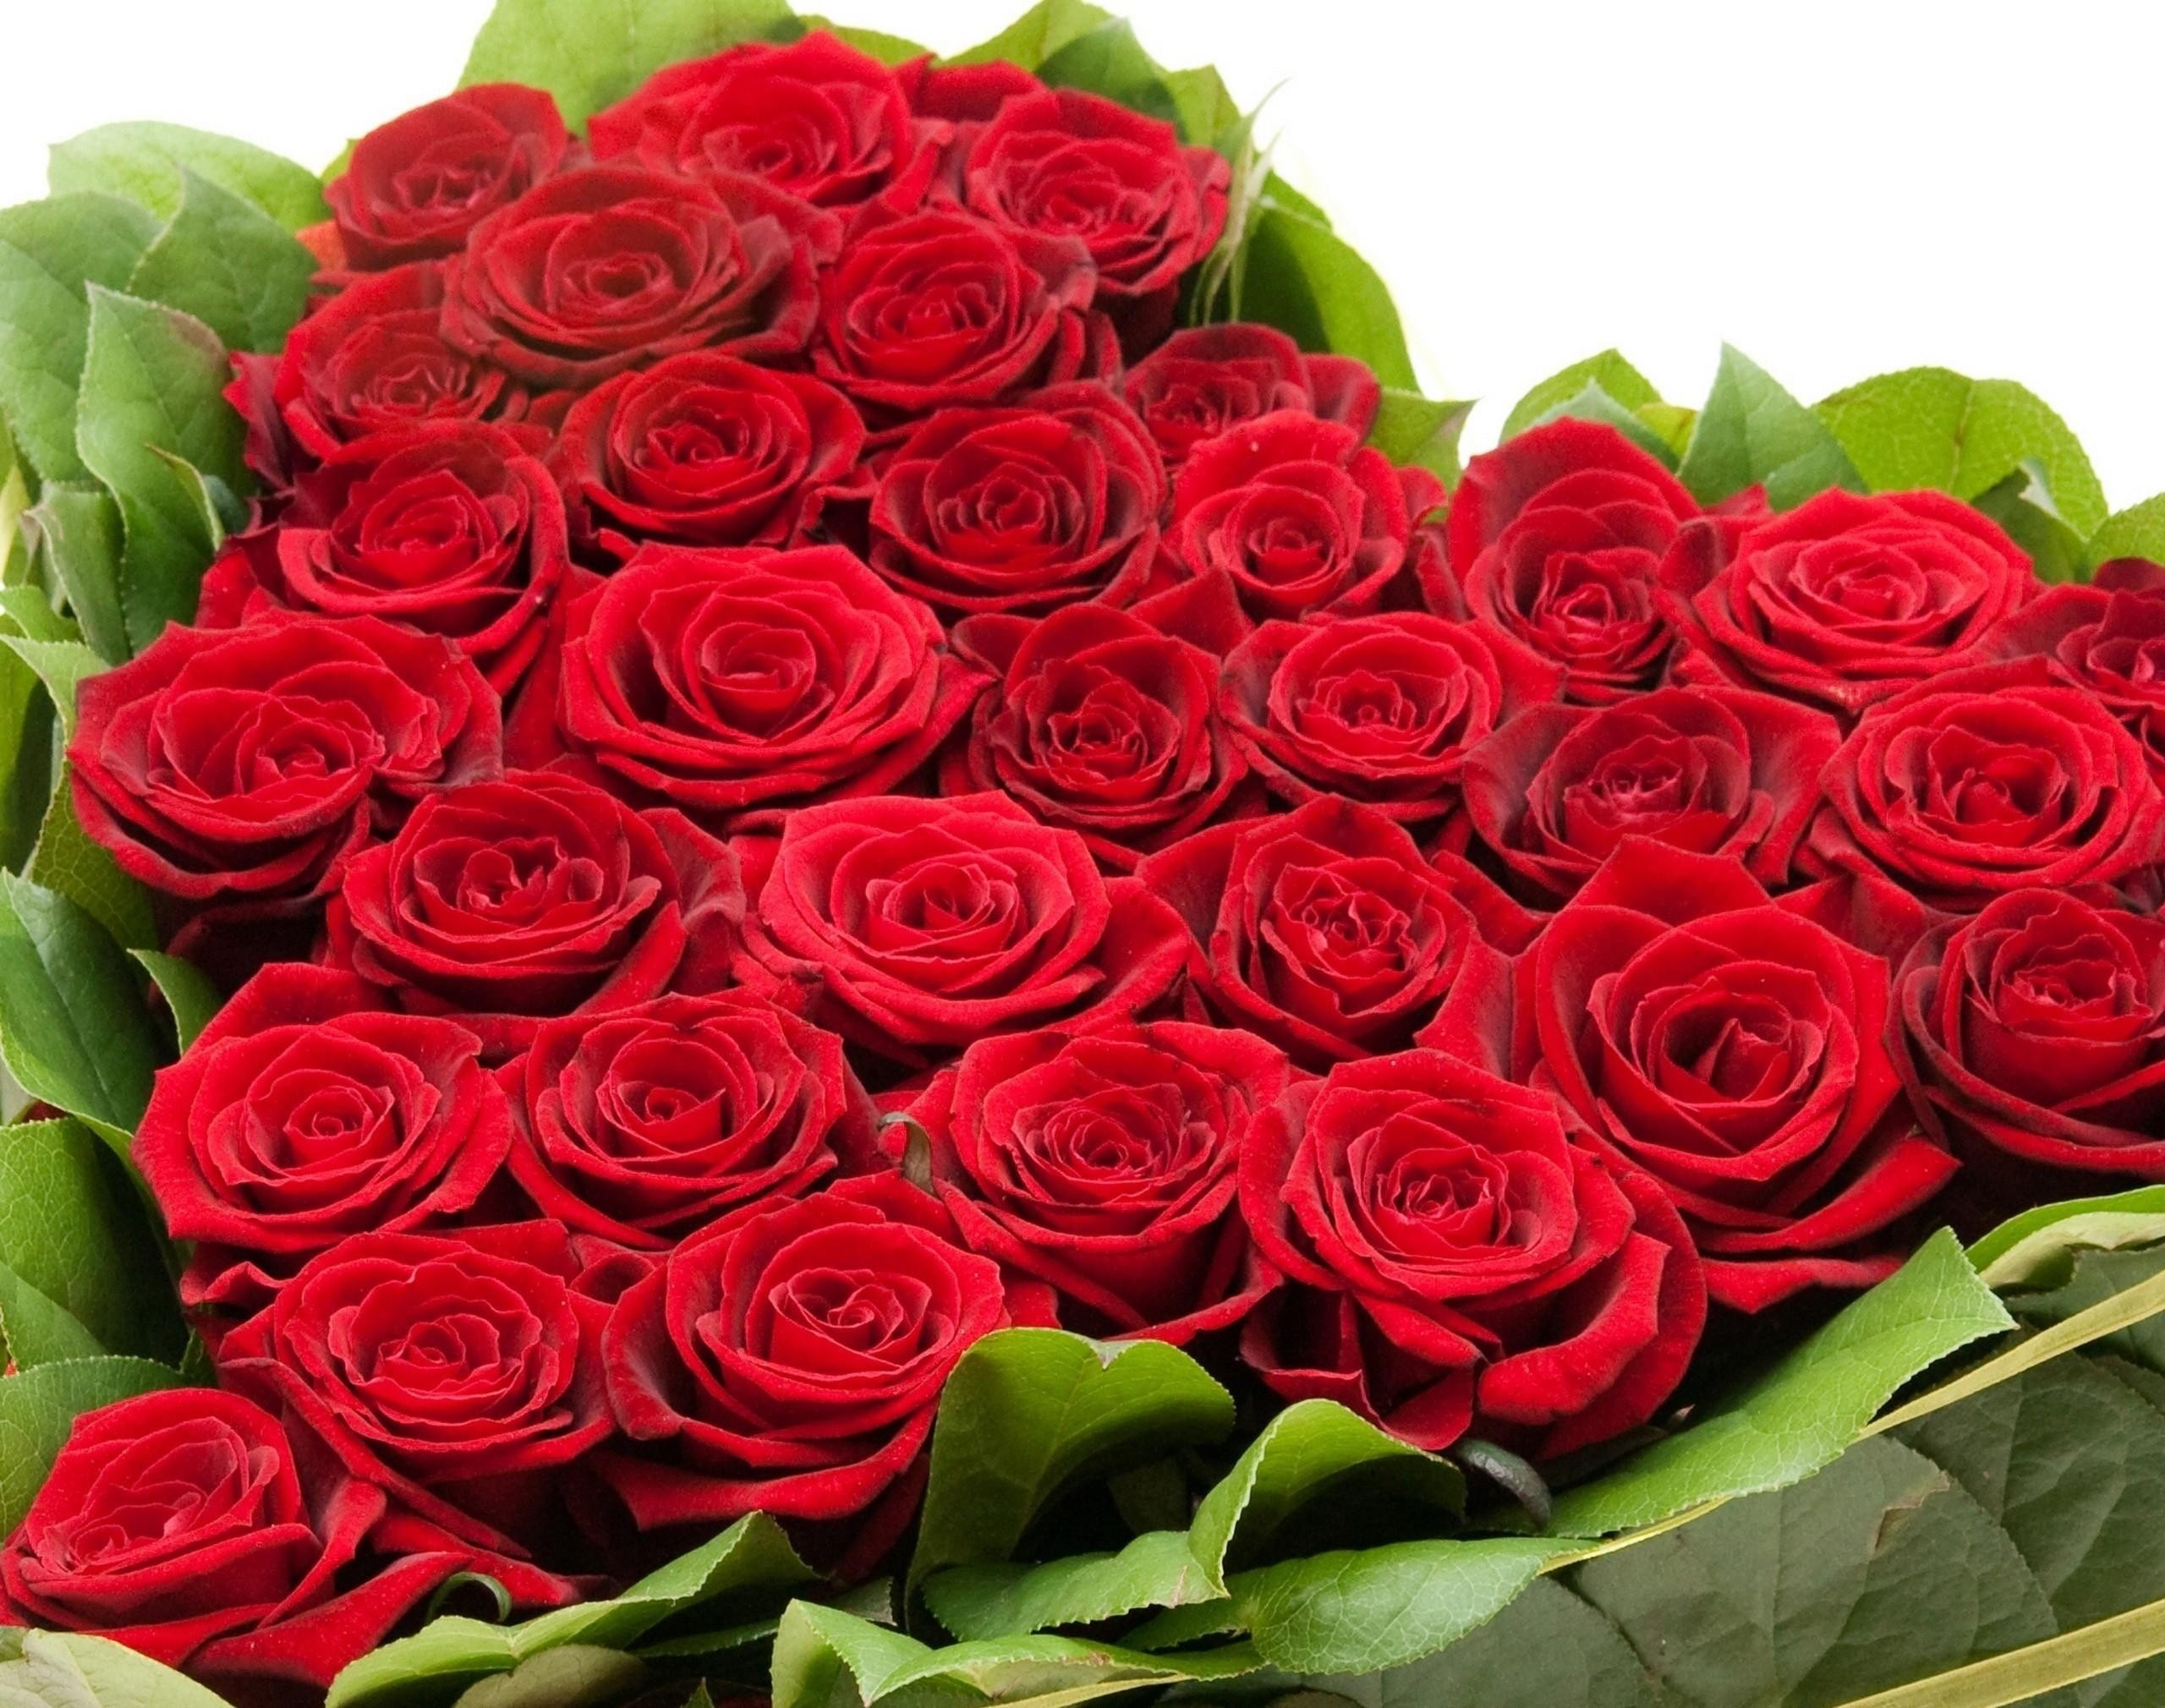 Flowers Images Roses For Free Download 5 Mobile Wallpapers.